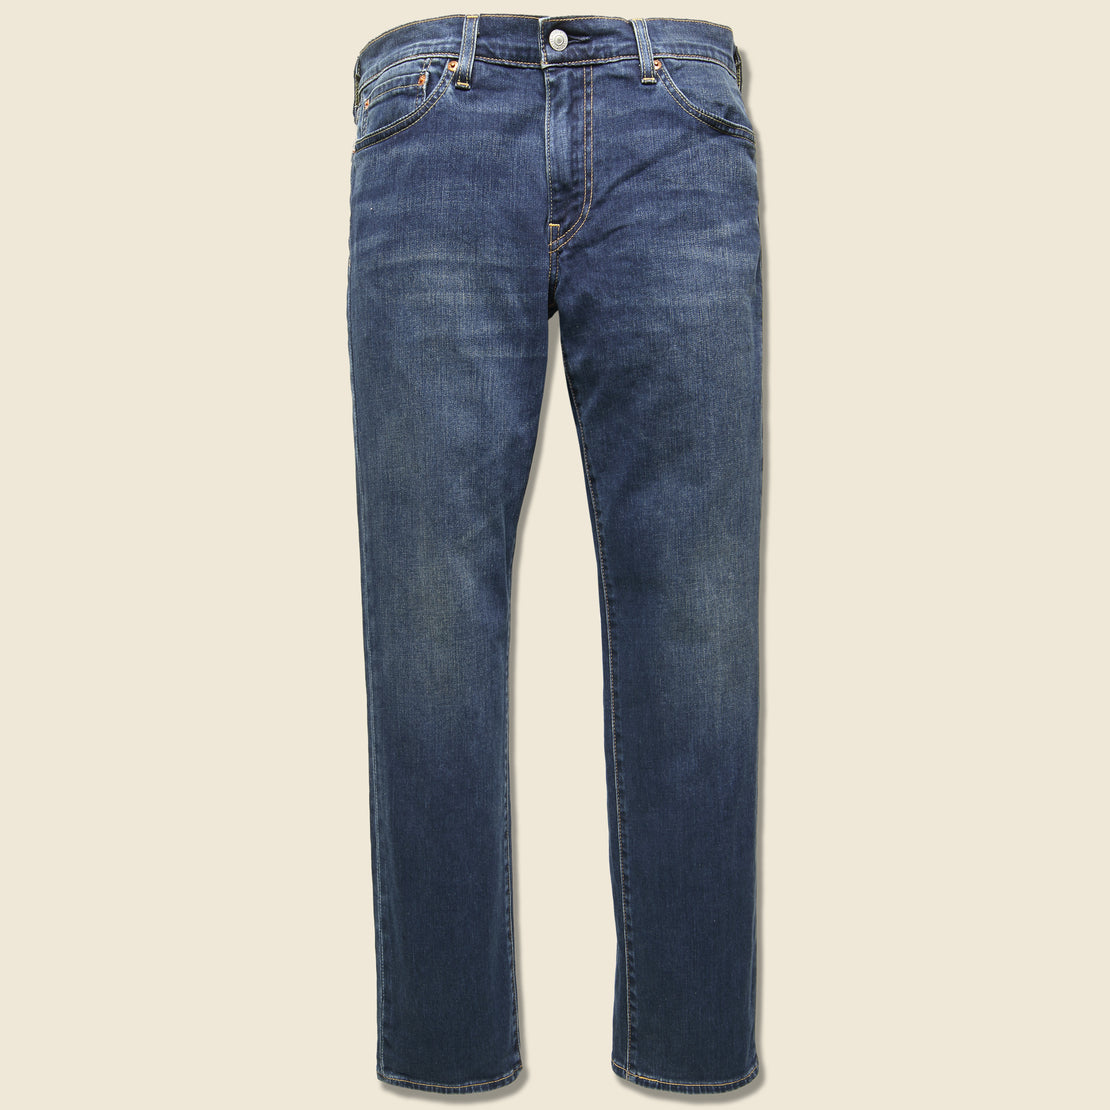 Levis Premium 511 Slim Fit Jean - Adriatic